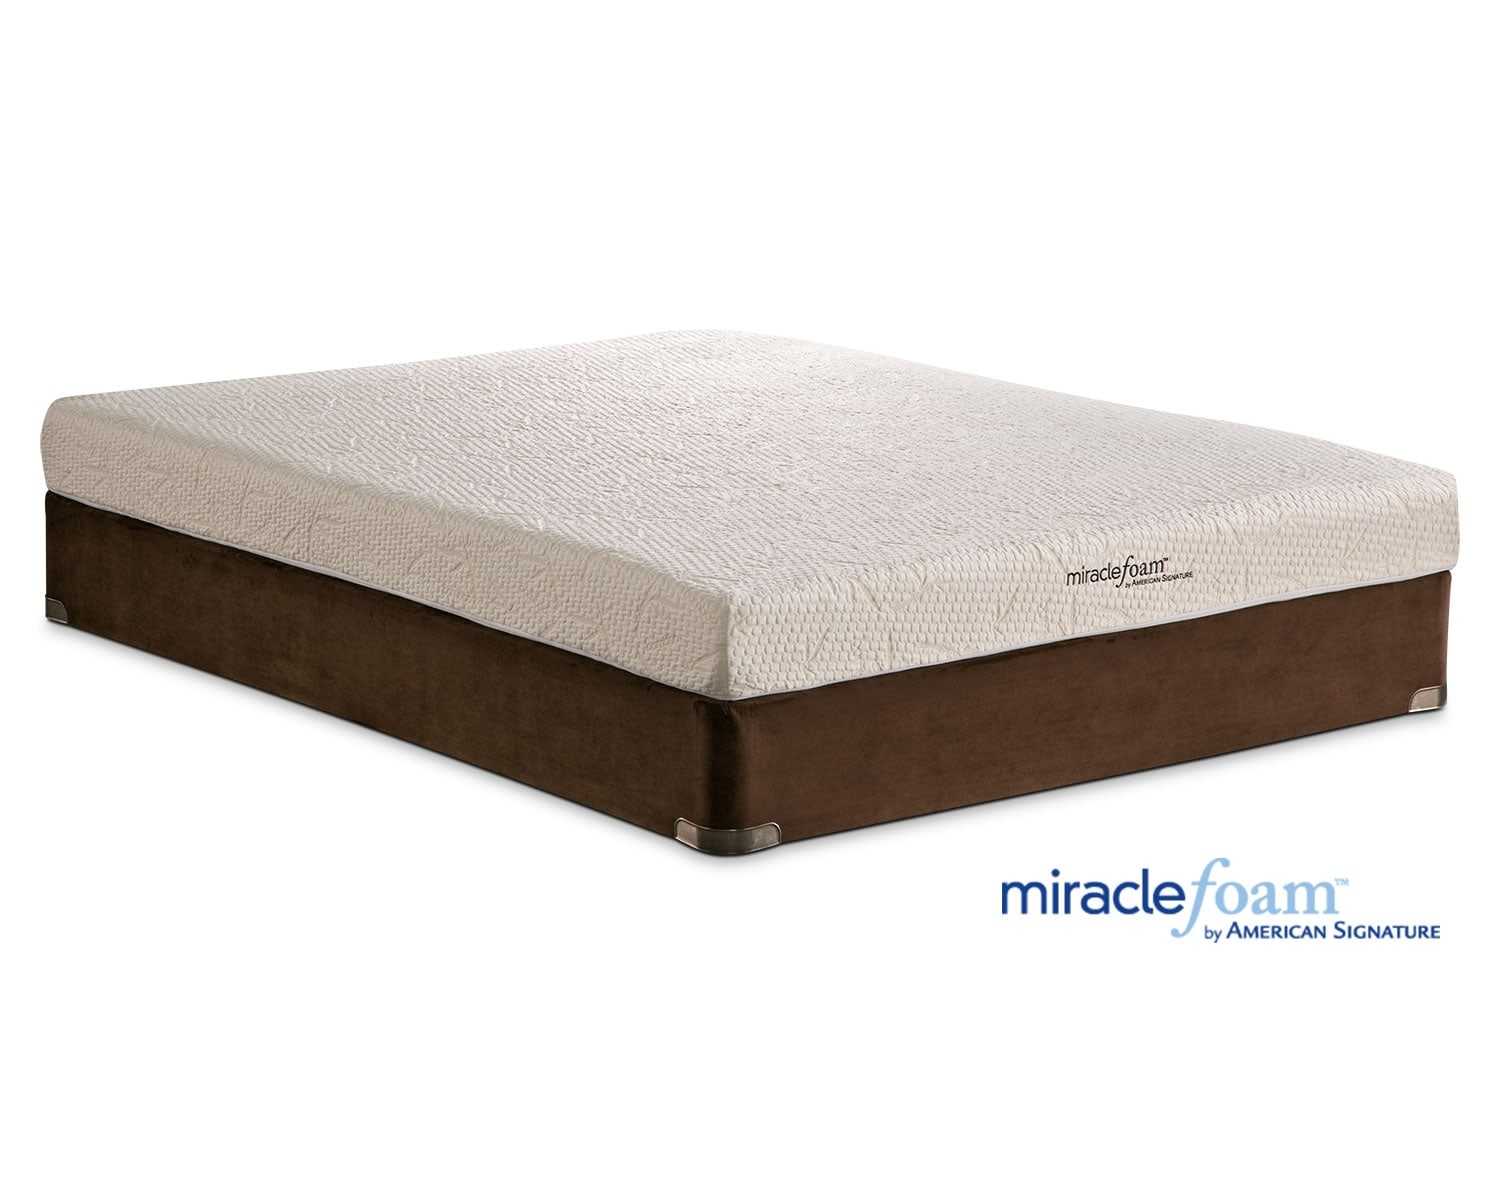 Shop Miracle Foam Mattresses Value City Furniture and Mattresses